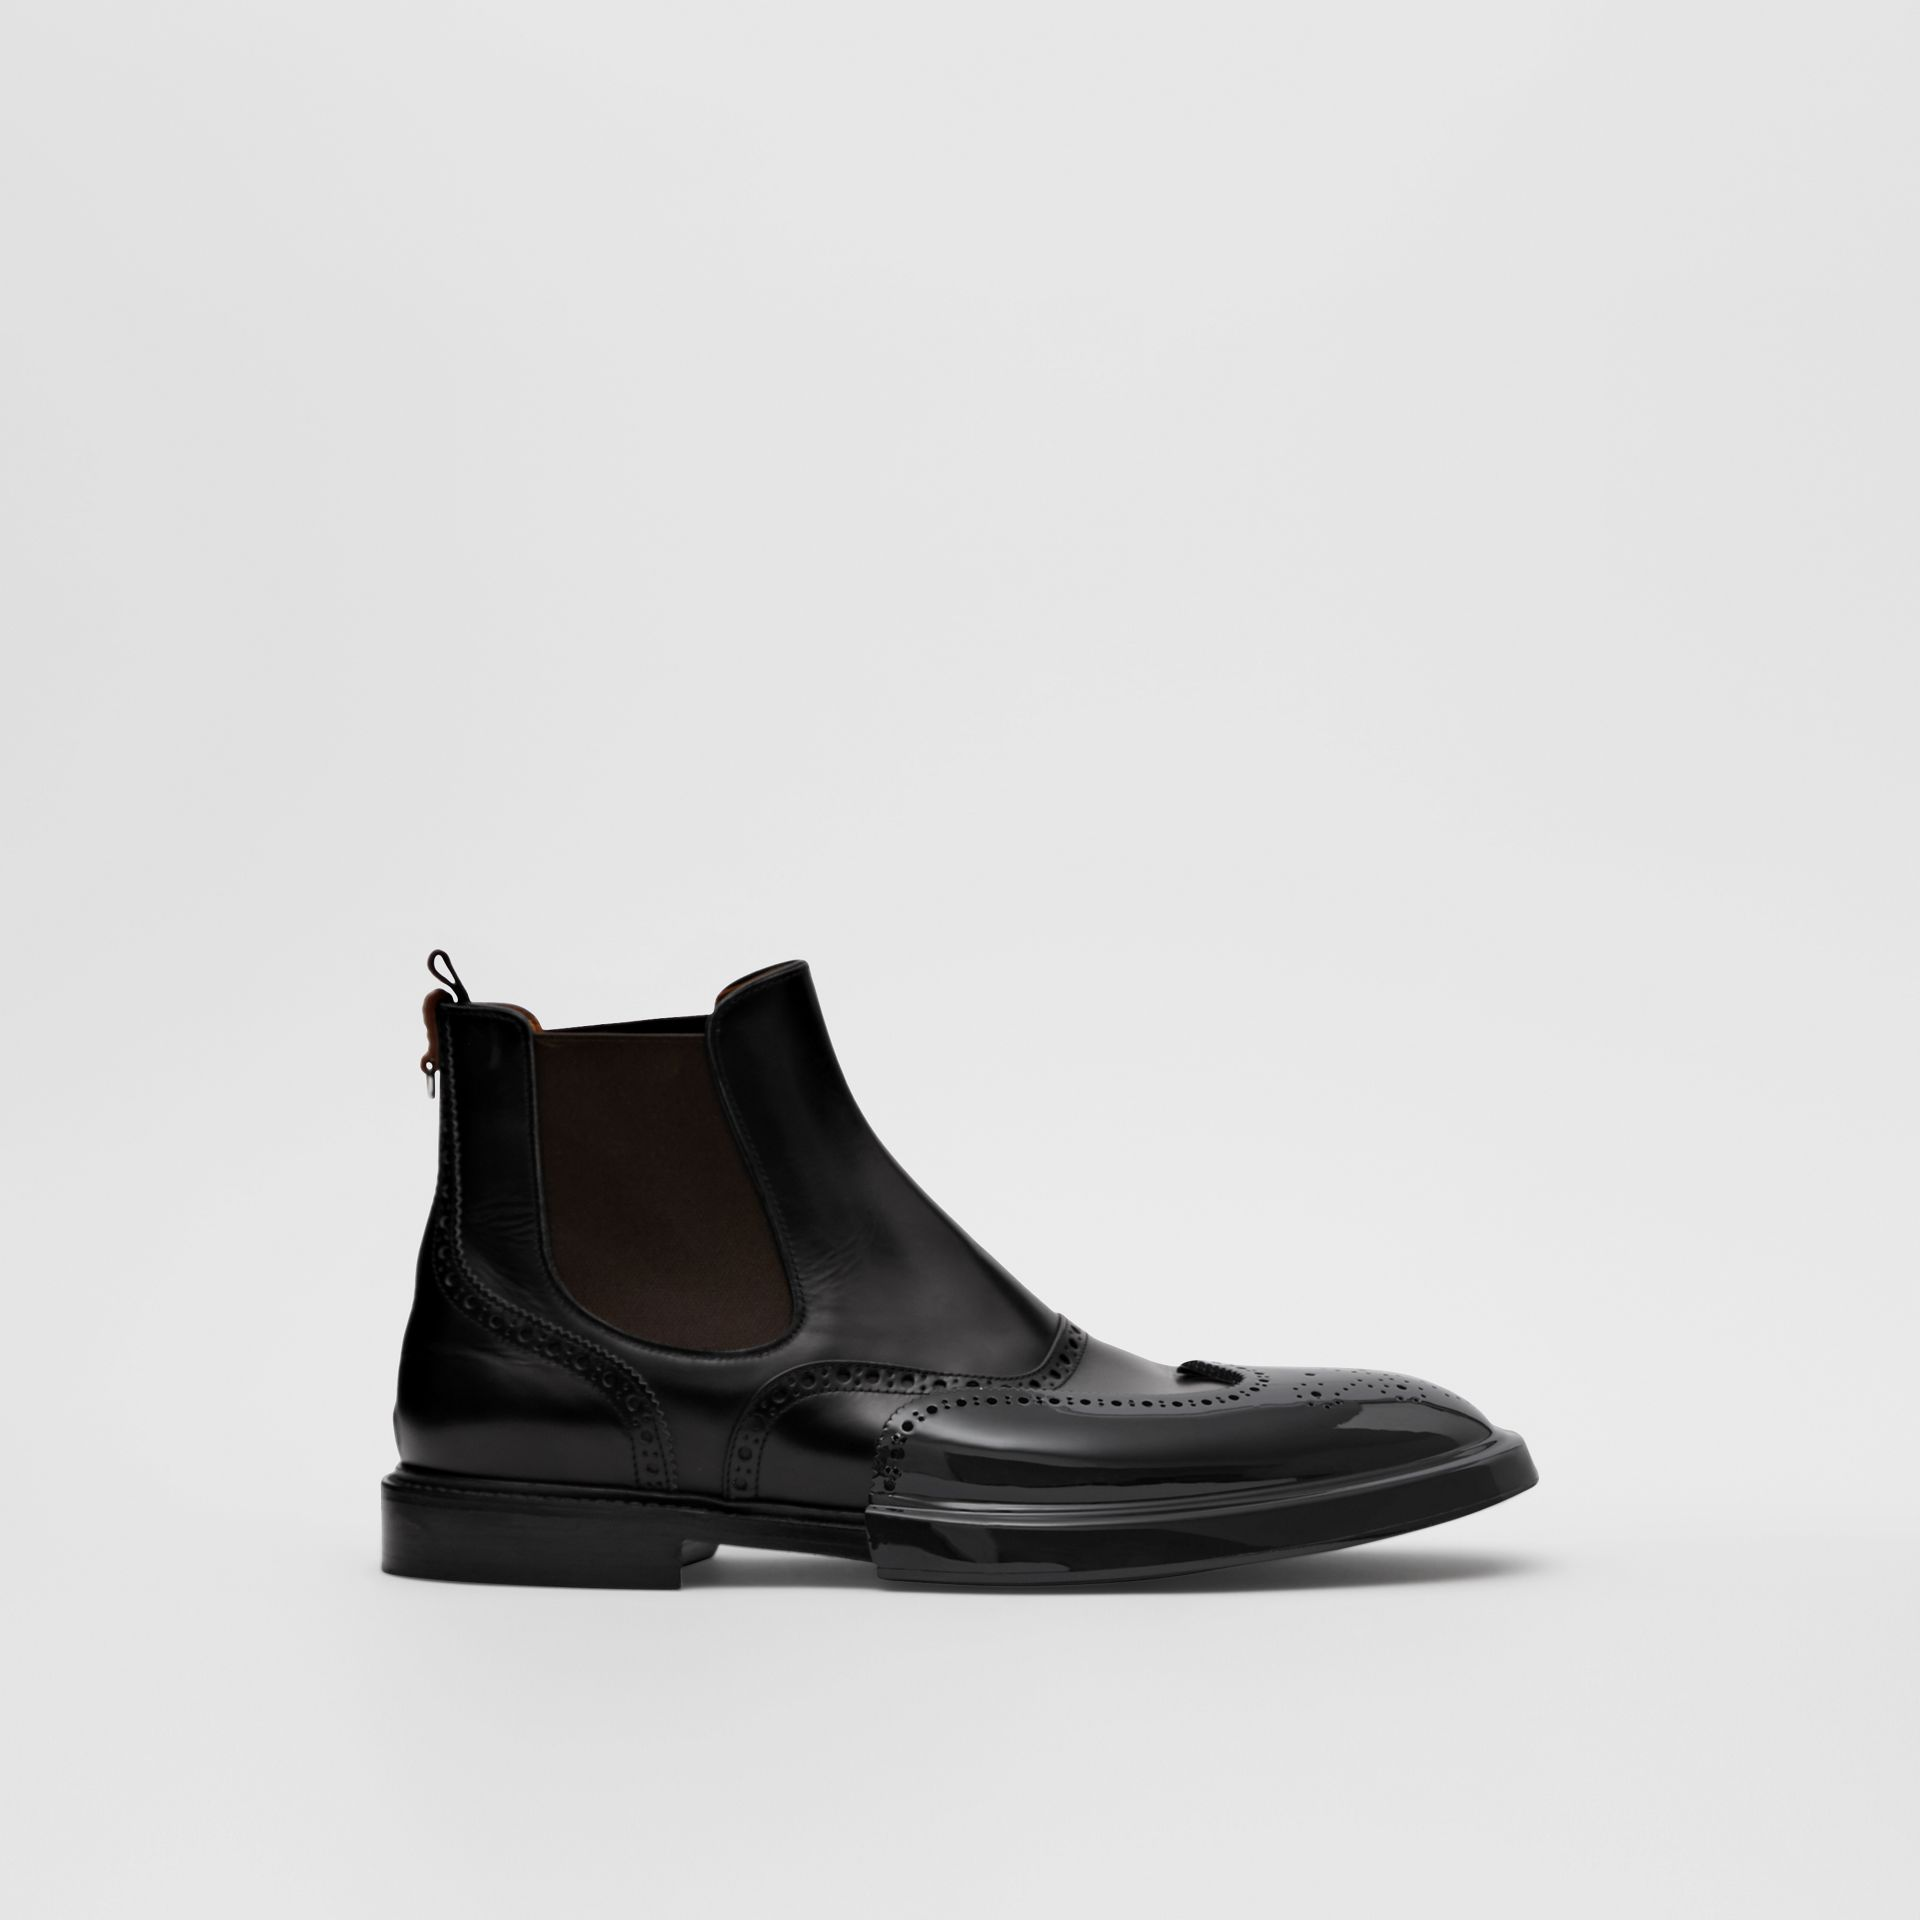 Toe Cap Detail Leather Chelsea Boots in Black | Burberry United States - gallery image 4